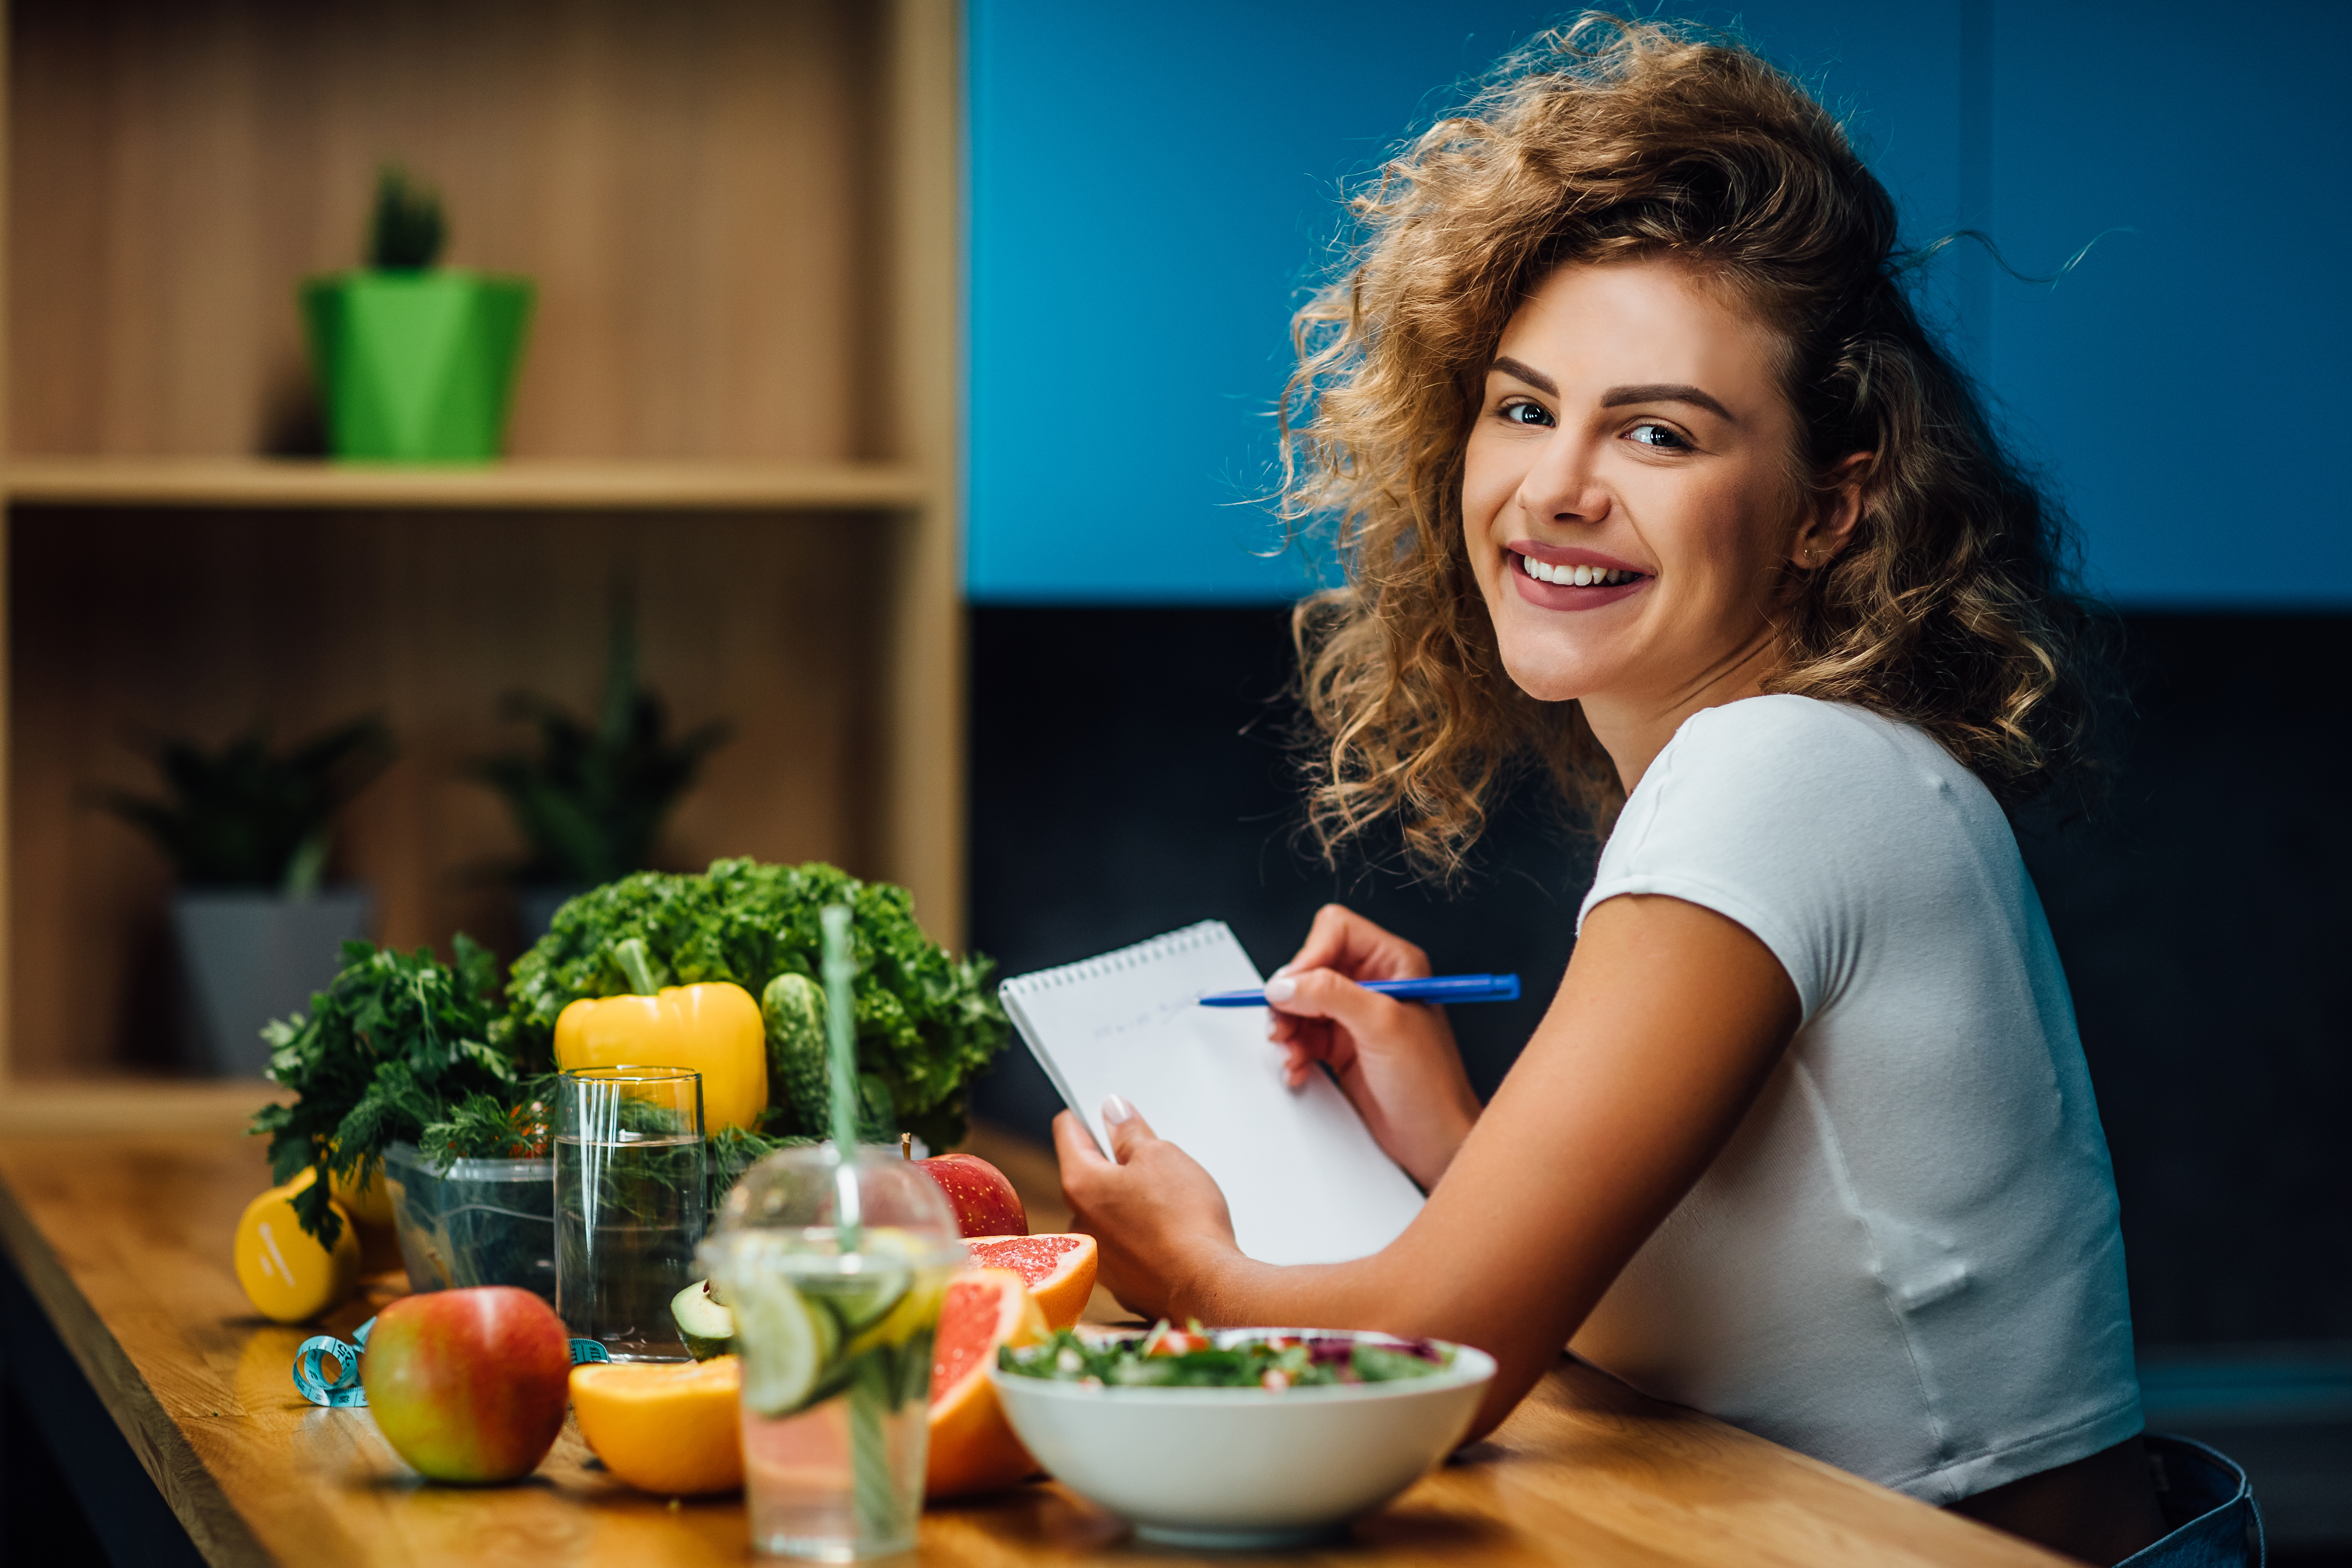 The top 10 foods to regulate blood sugar levels naturally